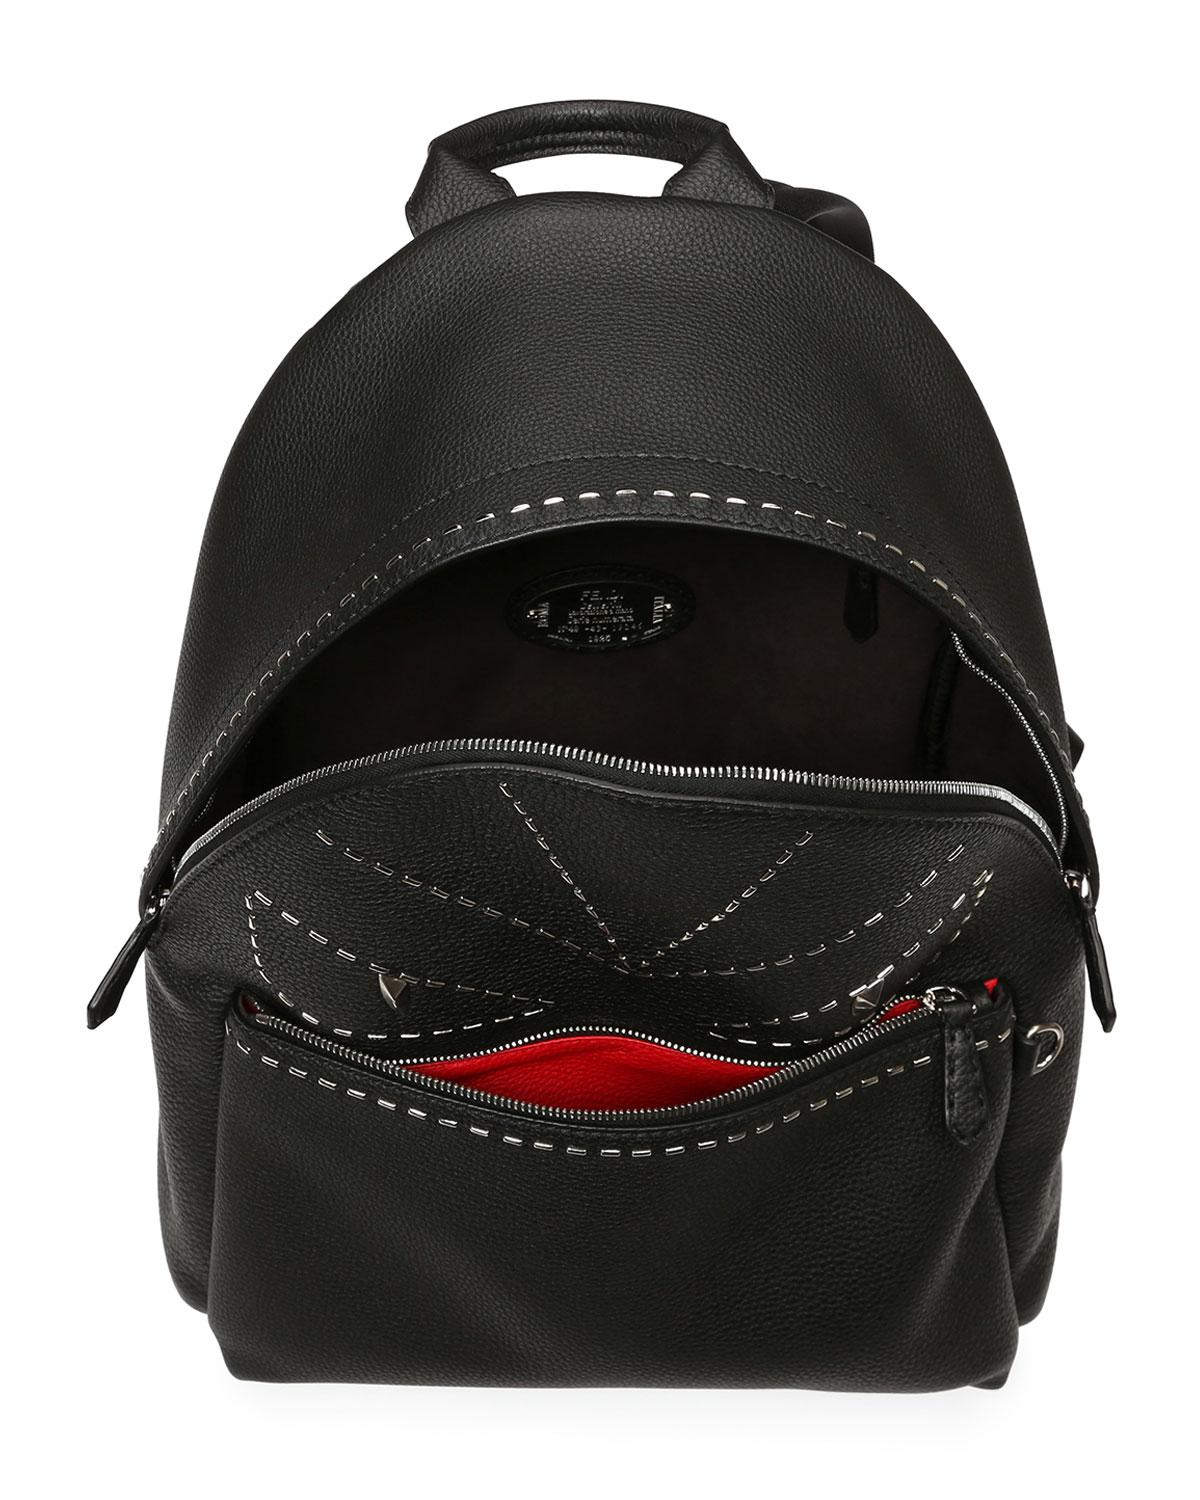 56c0fef3077 Fendi Stitched Monster Eyes Leather Backpack in Gray - Lyst